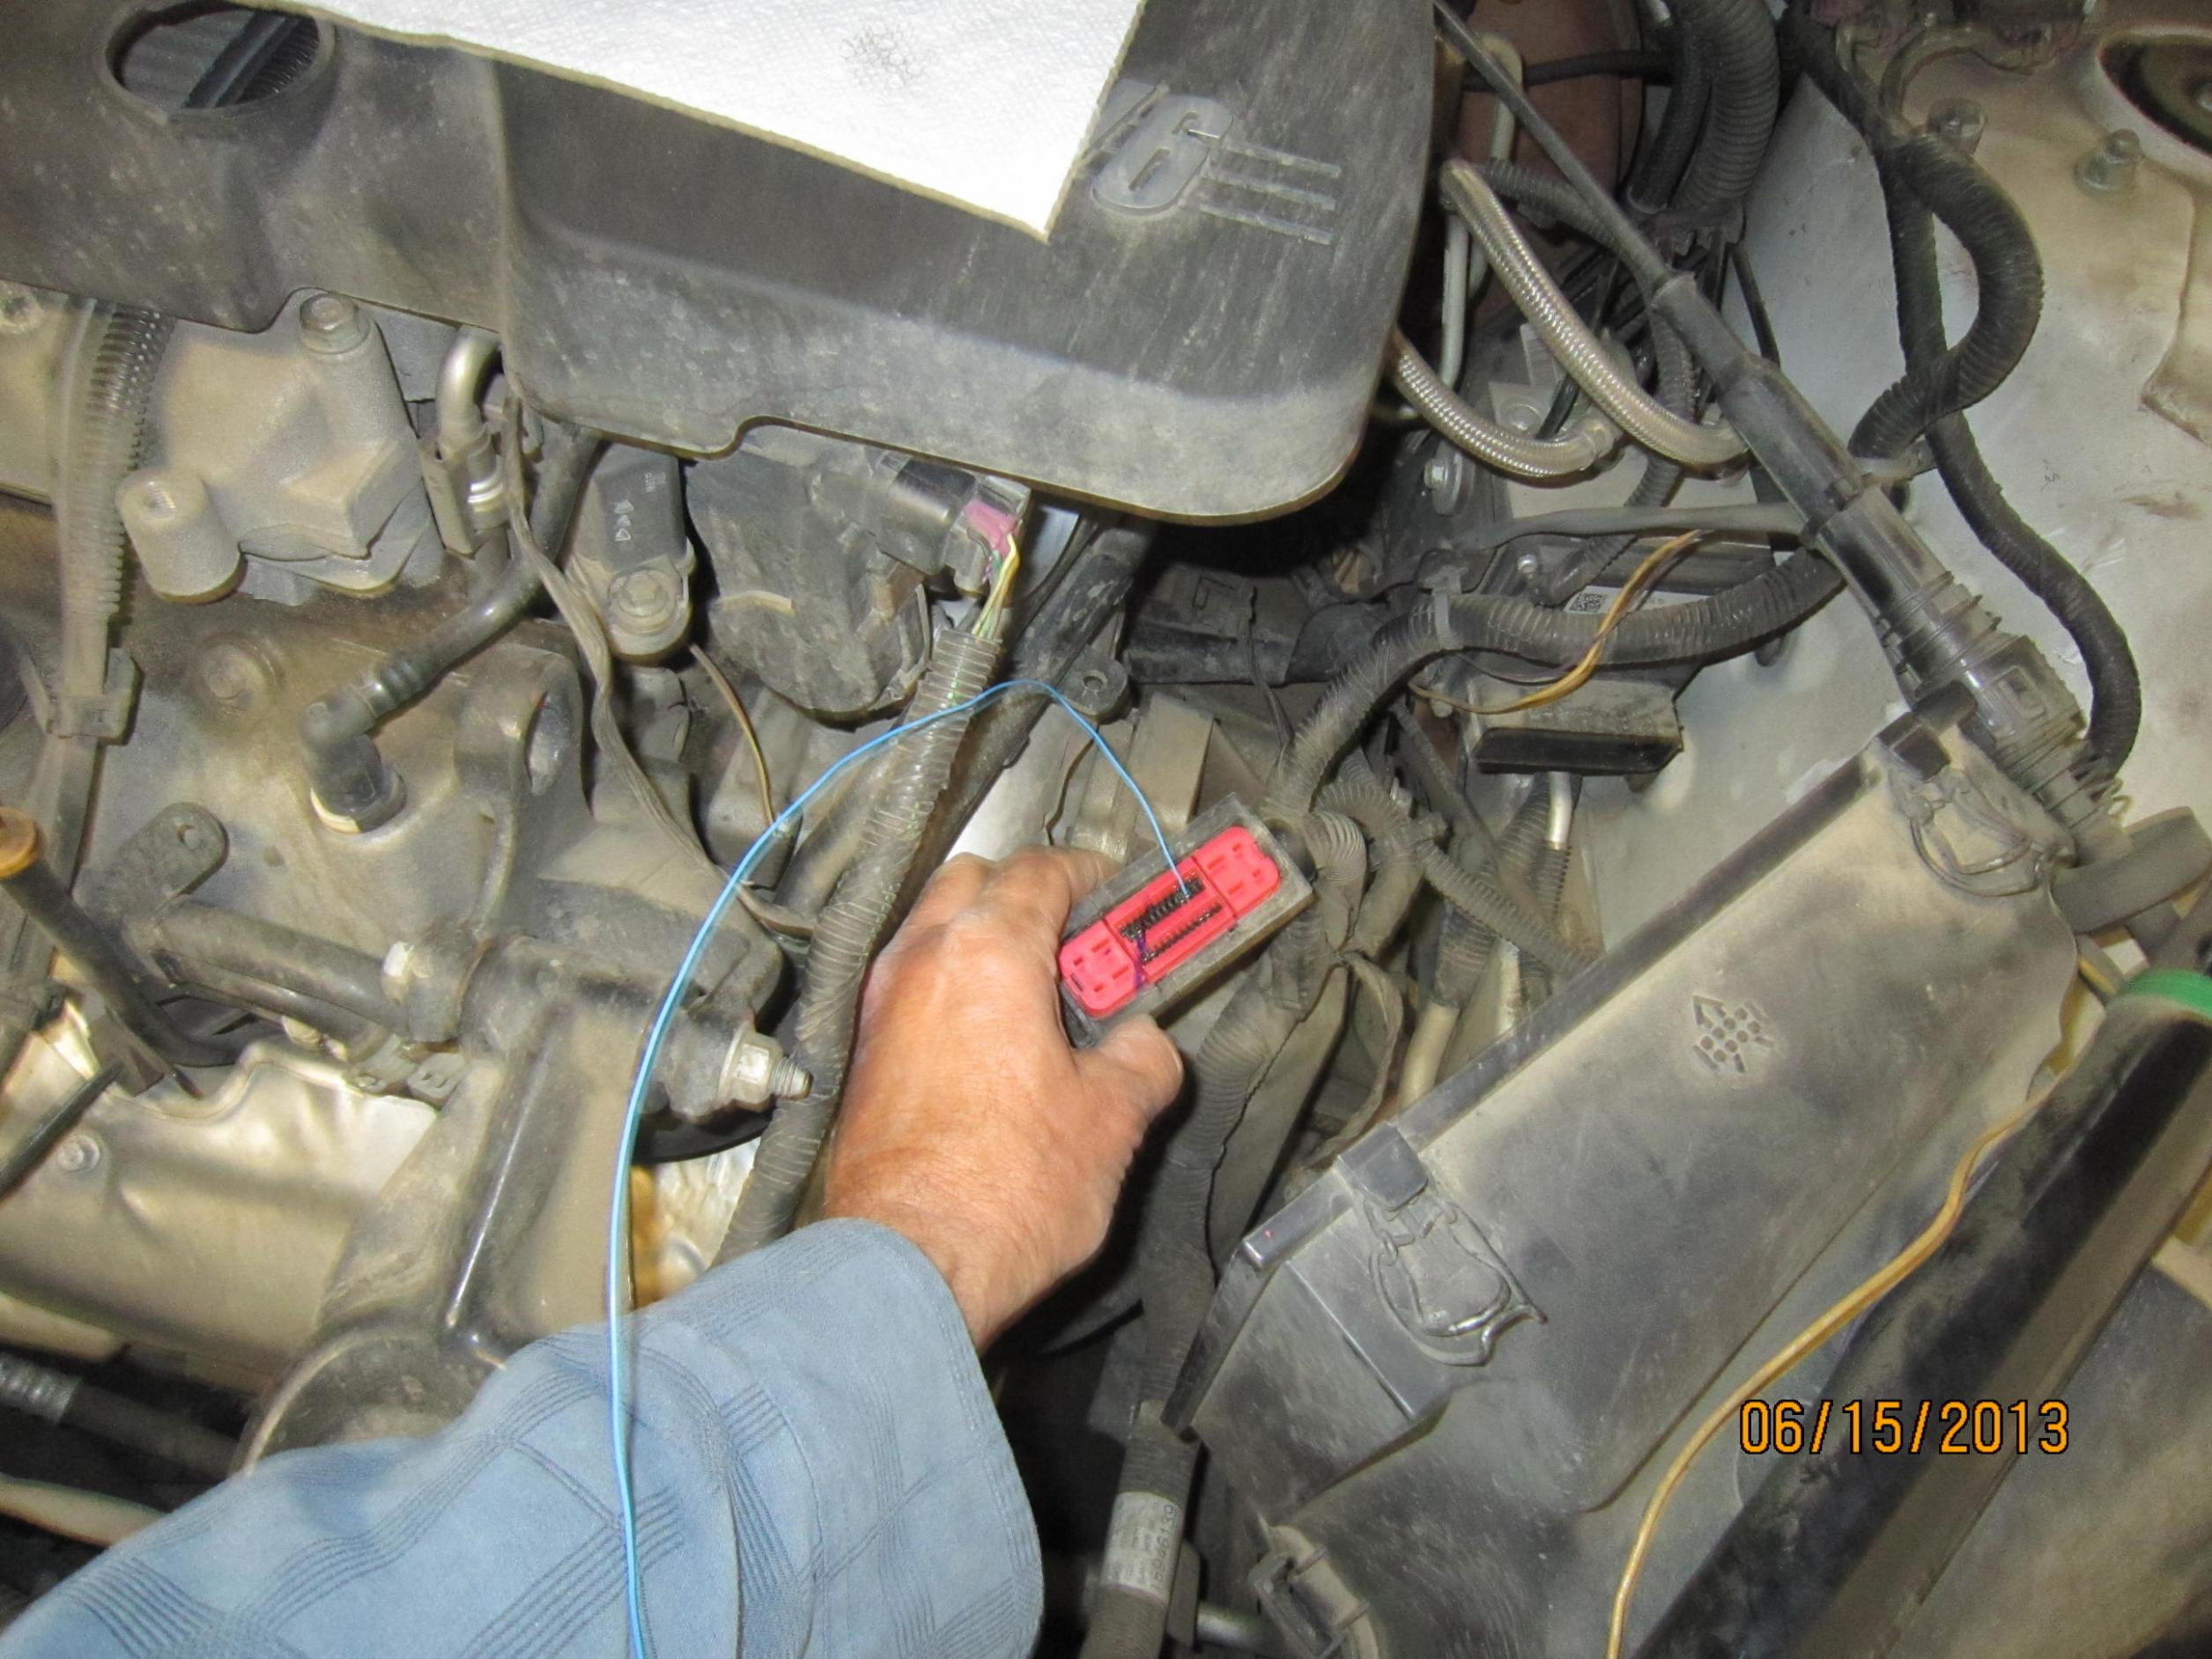 Tc Wiring Harness Auto Electrical Diagram 90 Engine Compartment 2008 Chevy Impala Abs Problems And Fix